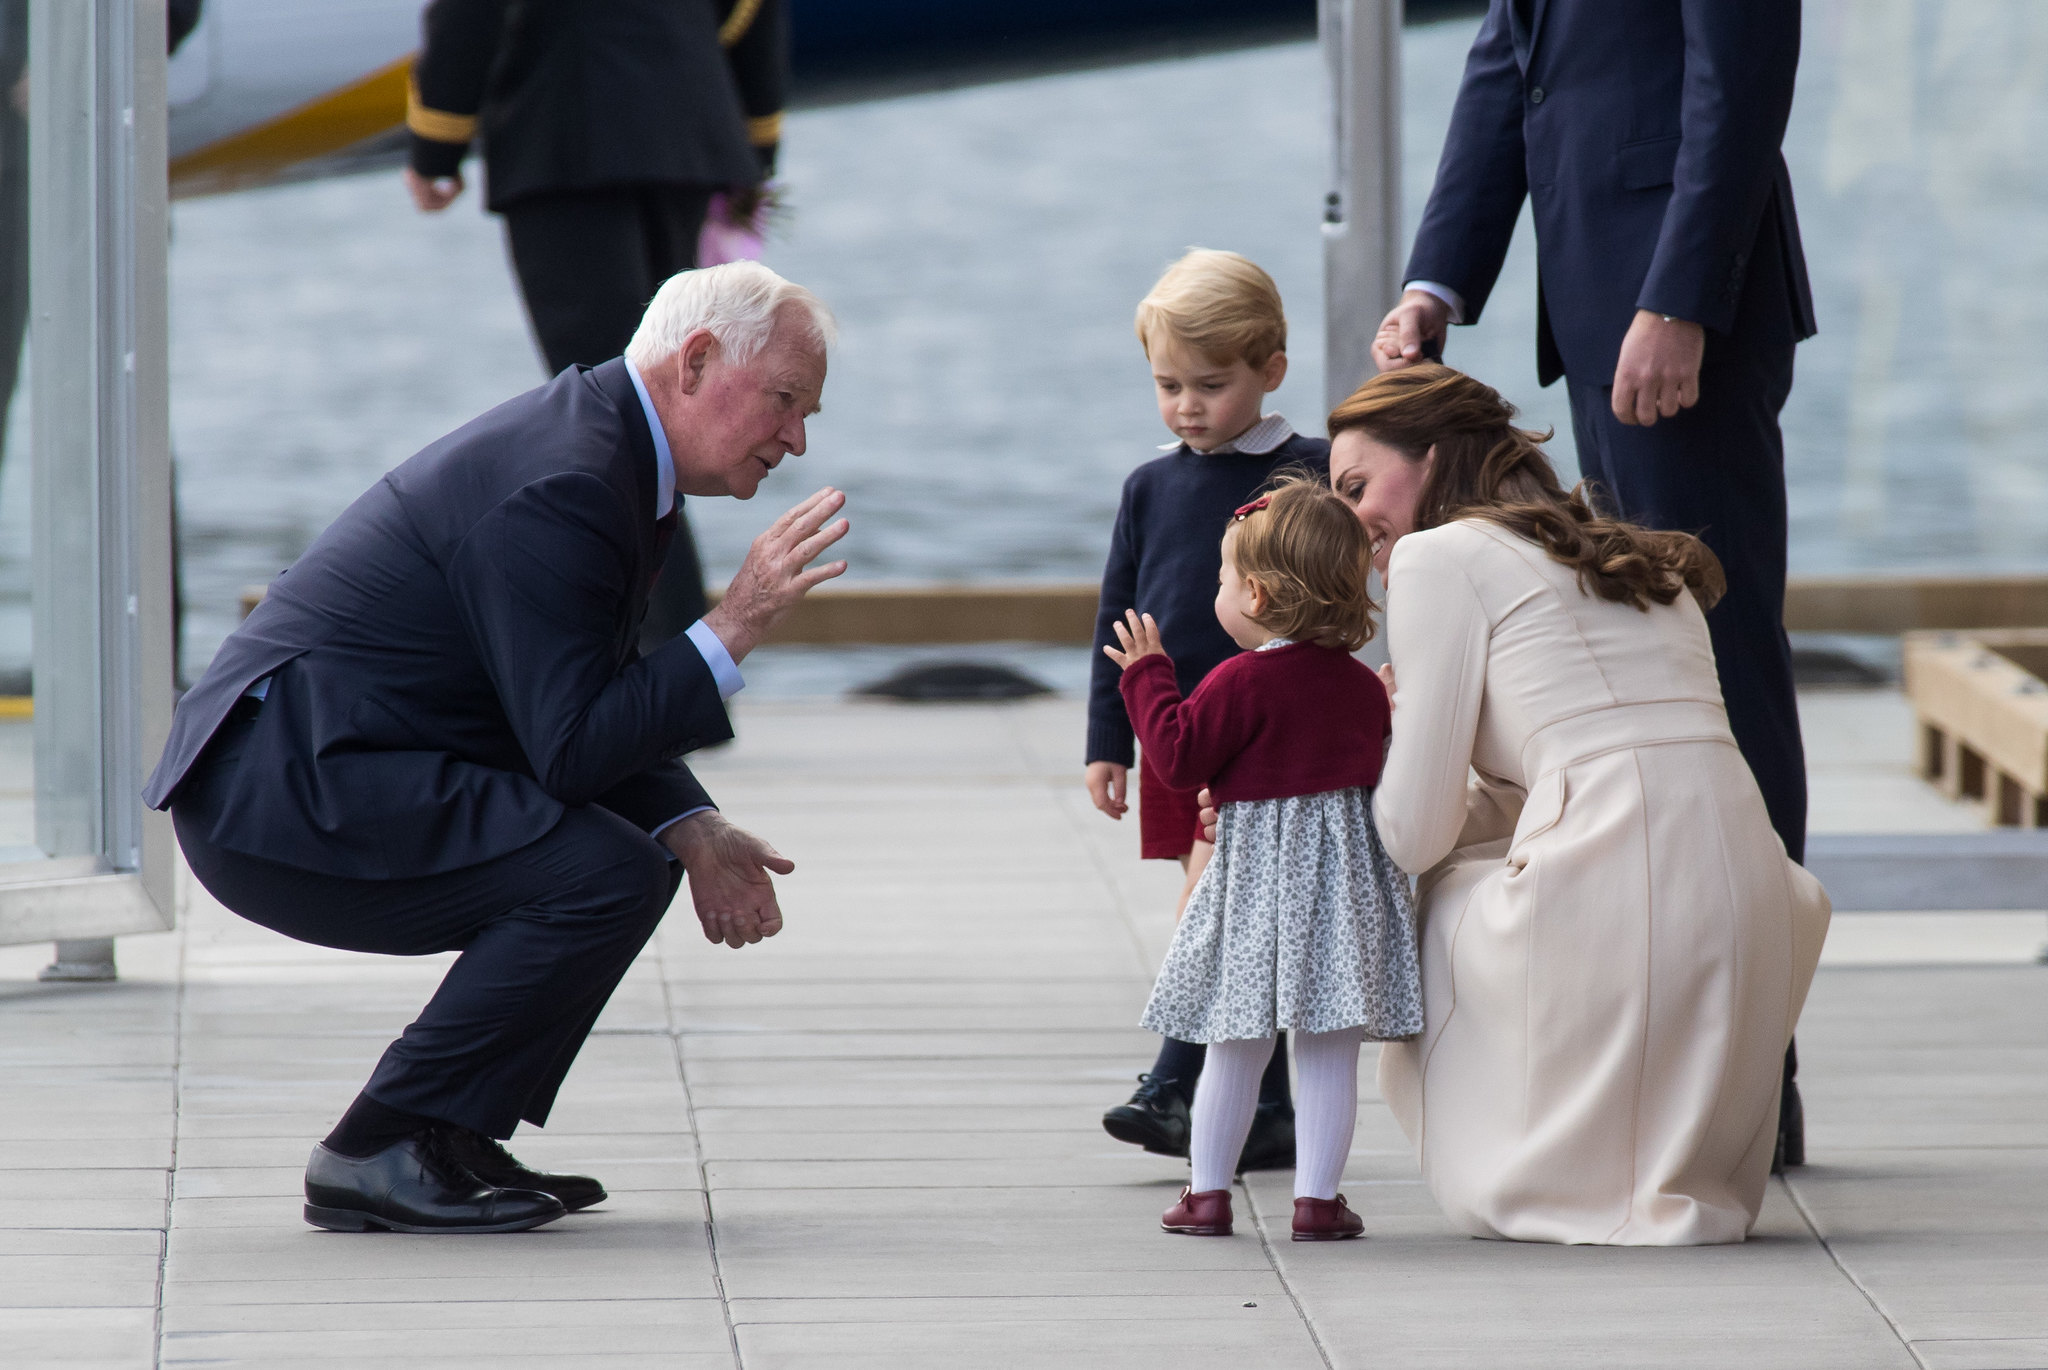 Governor-General of Canada bidding farewell to the family